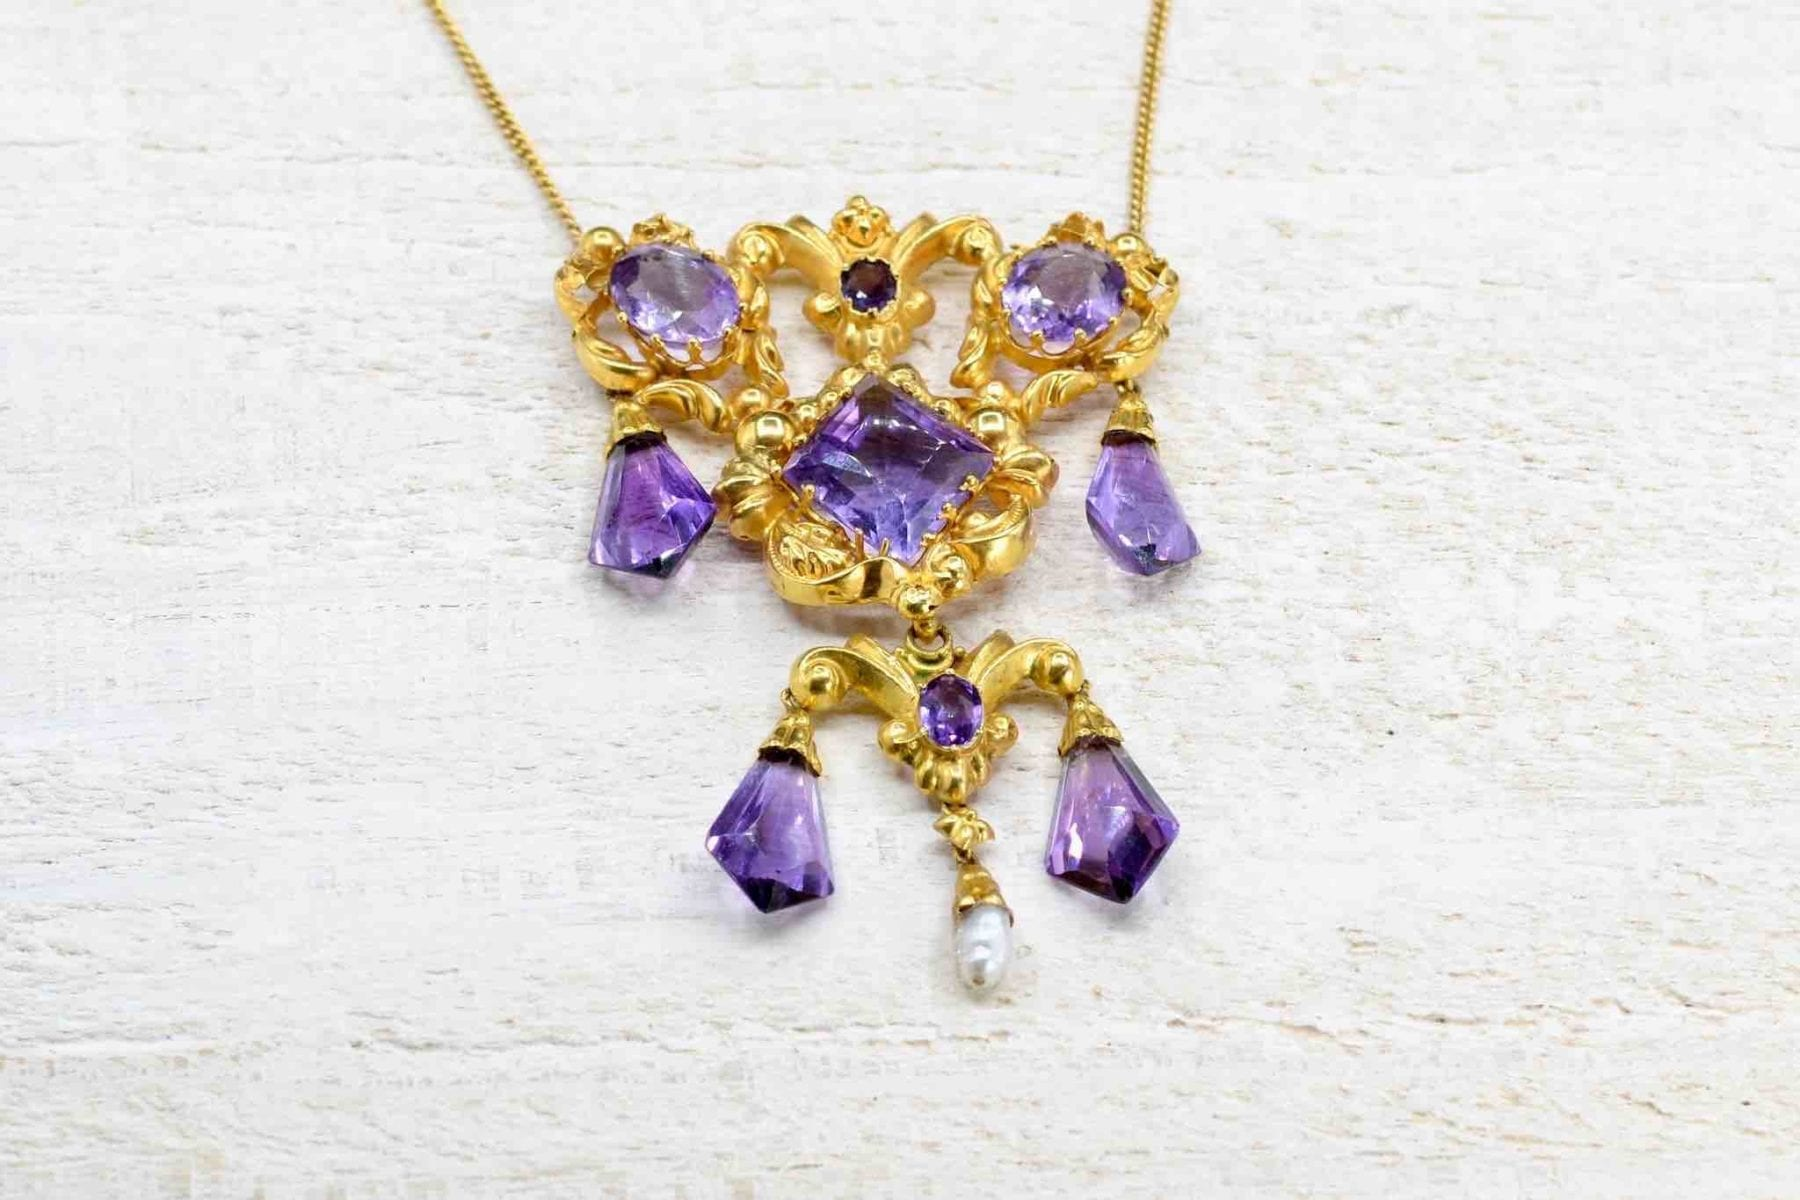 amethyst necklace in 18k gold